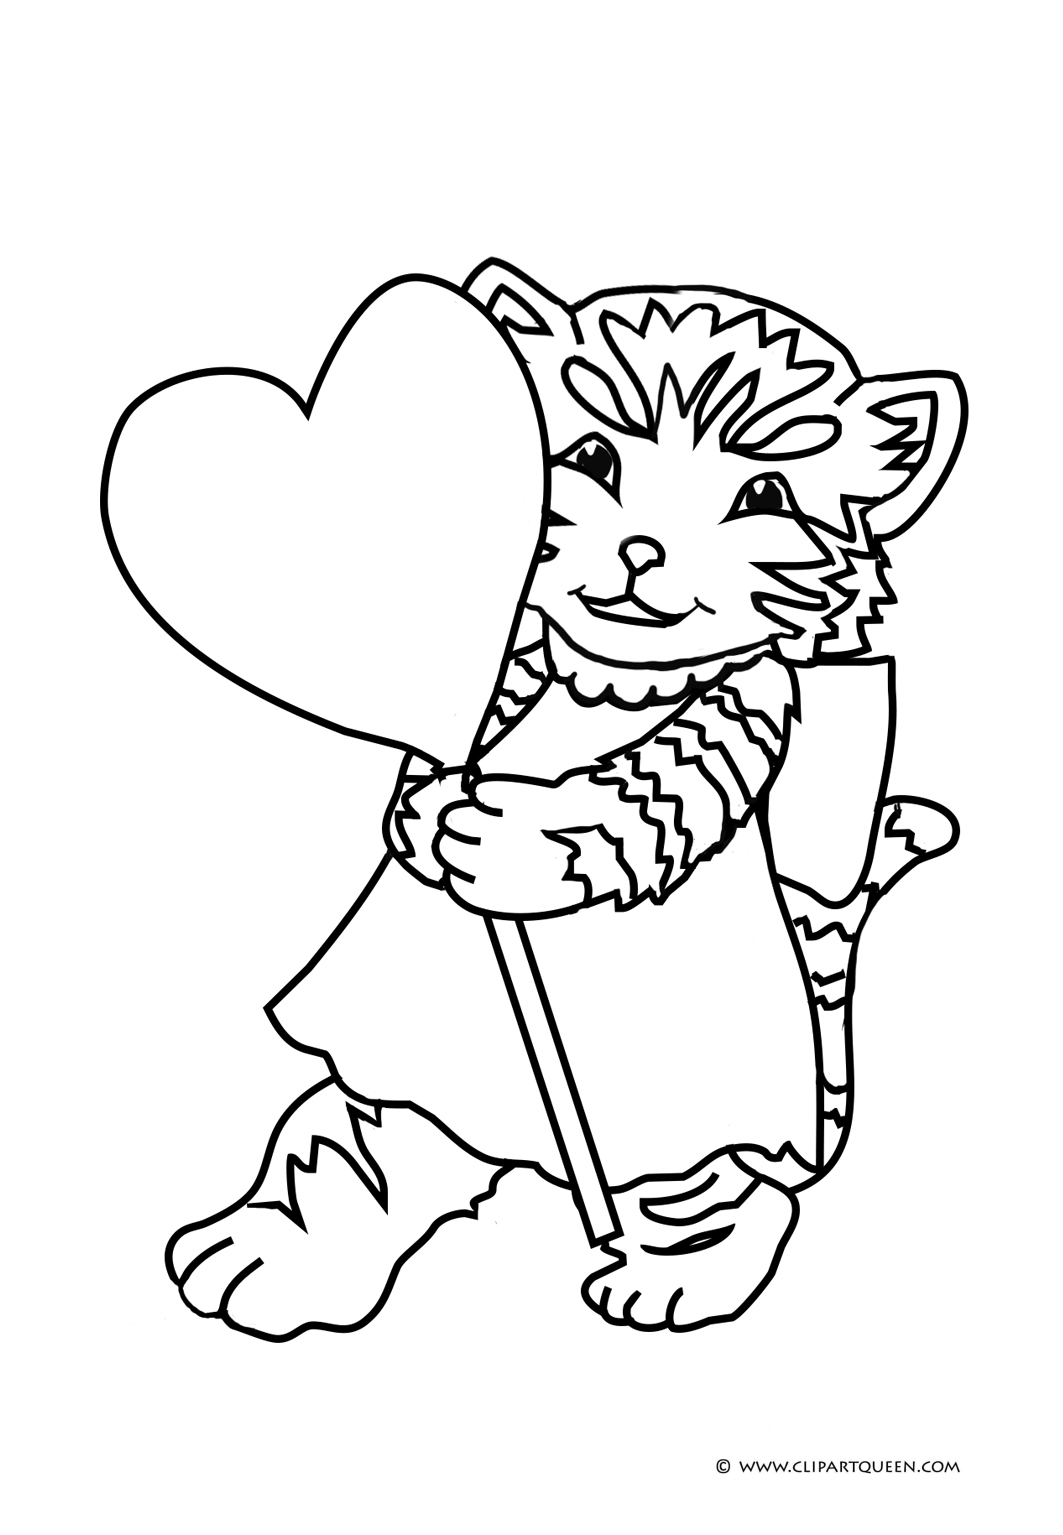 - 15 Valentine's Day Coloring Pages